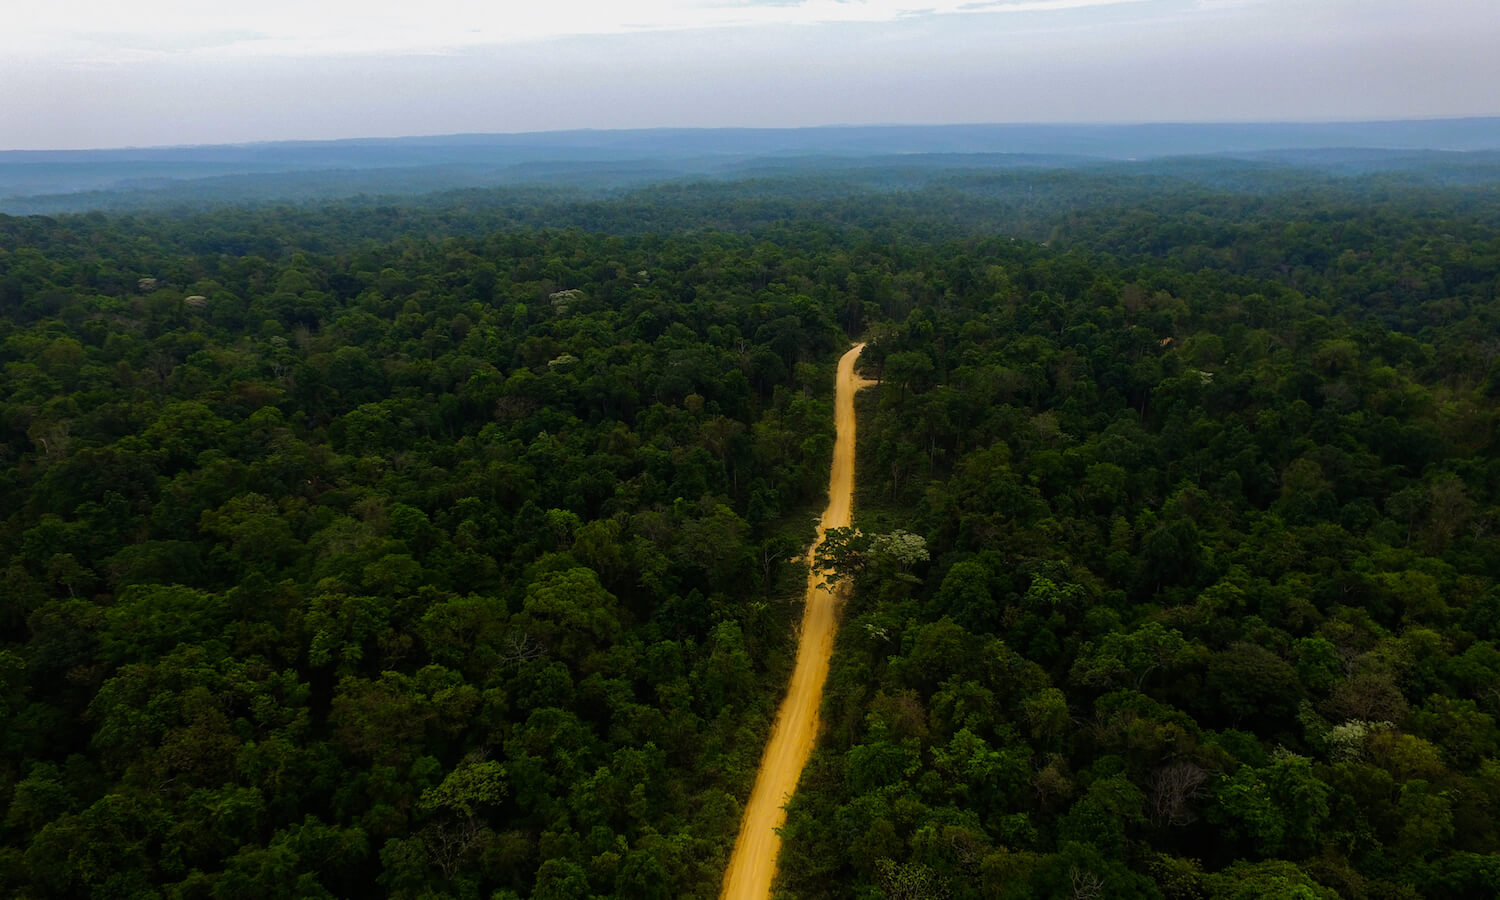 Aerial view of thick forest with yellow, dirt road running down the middle.